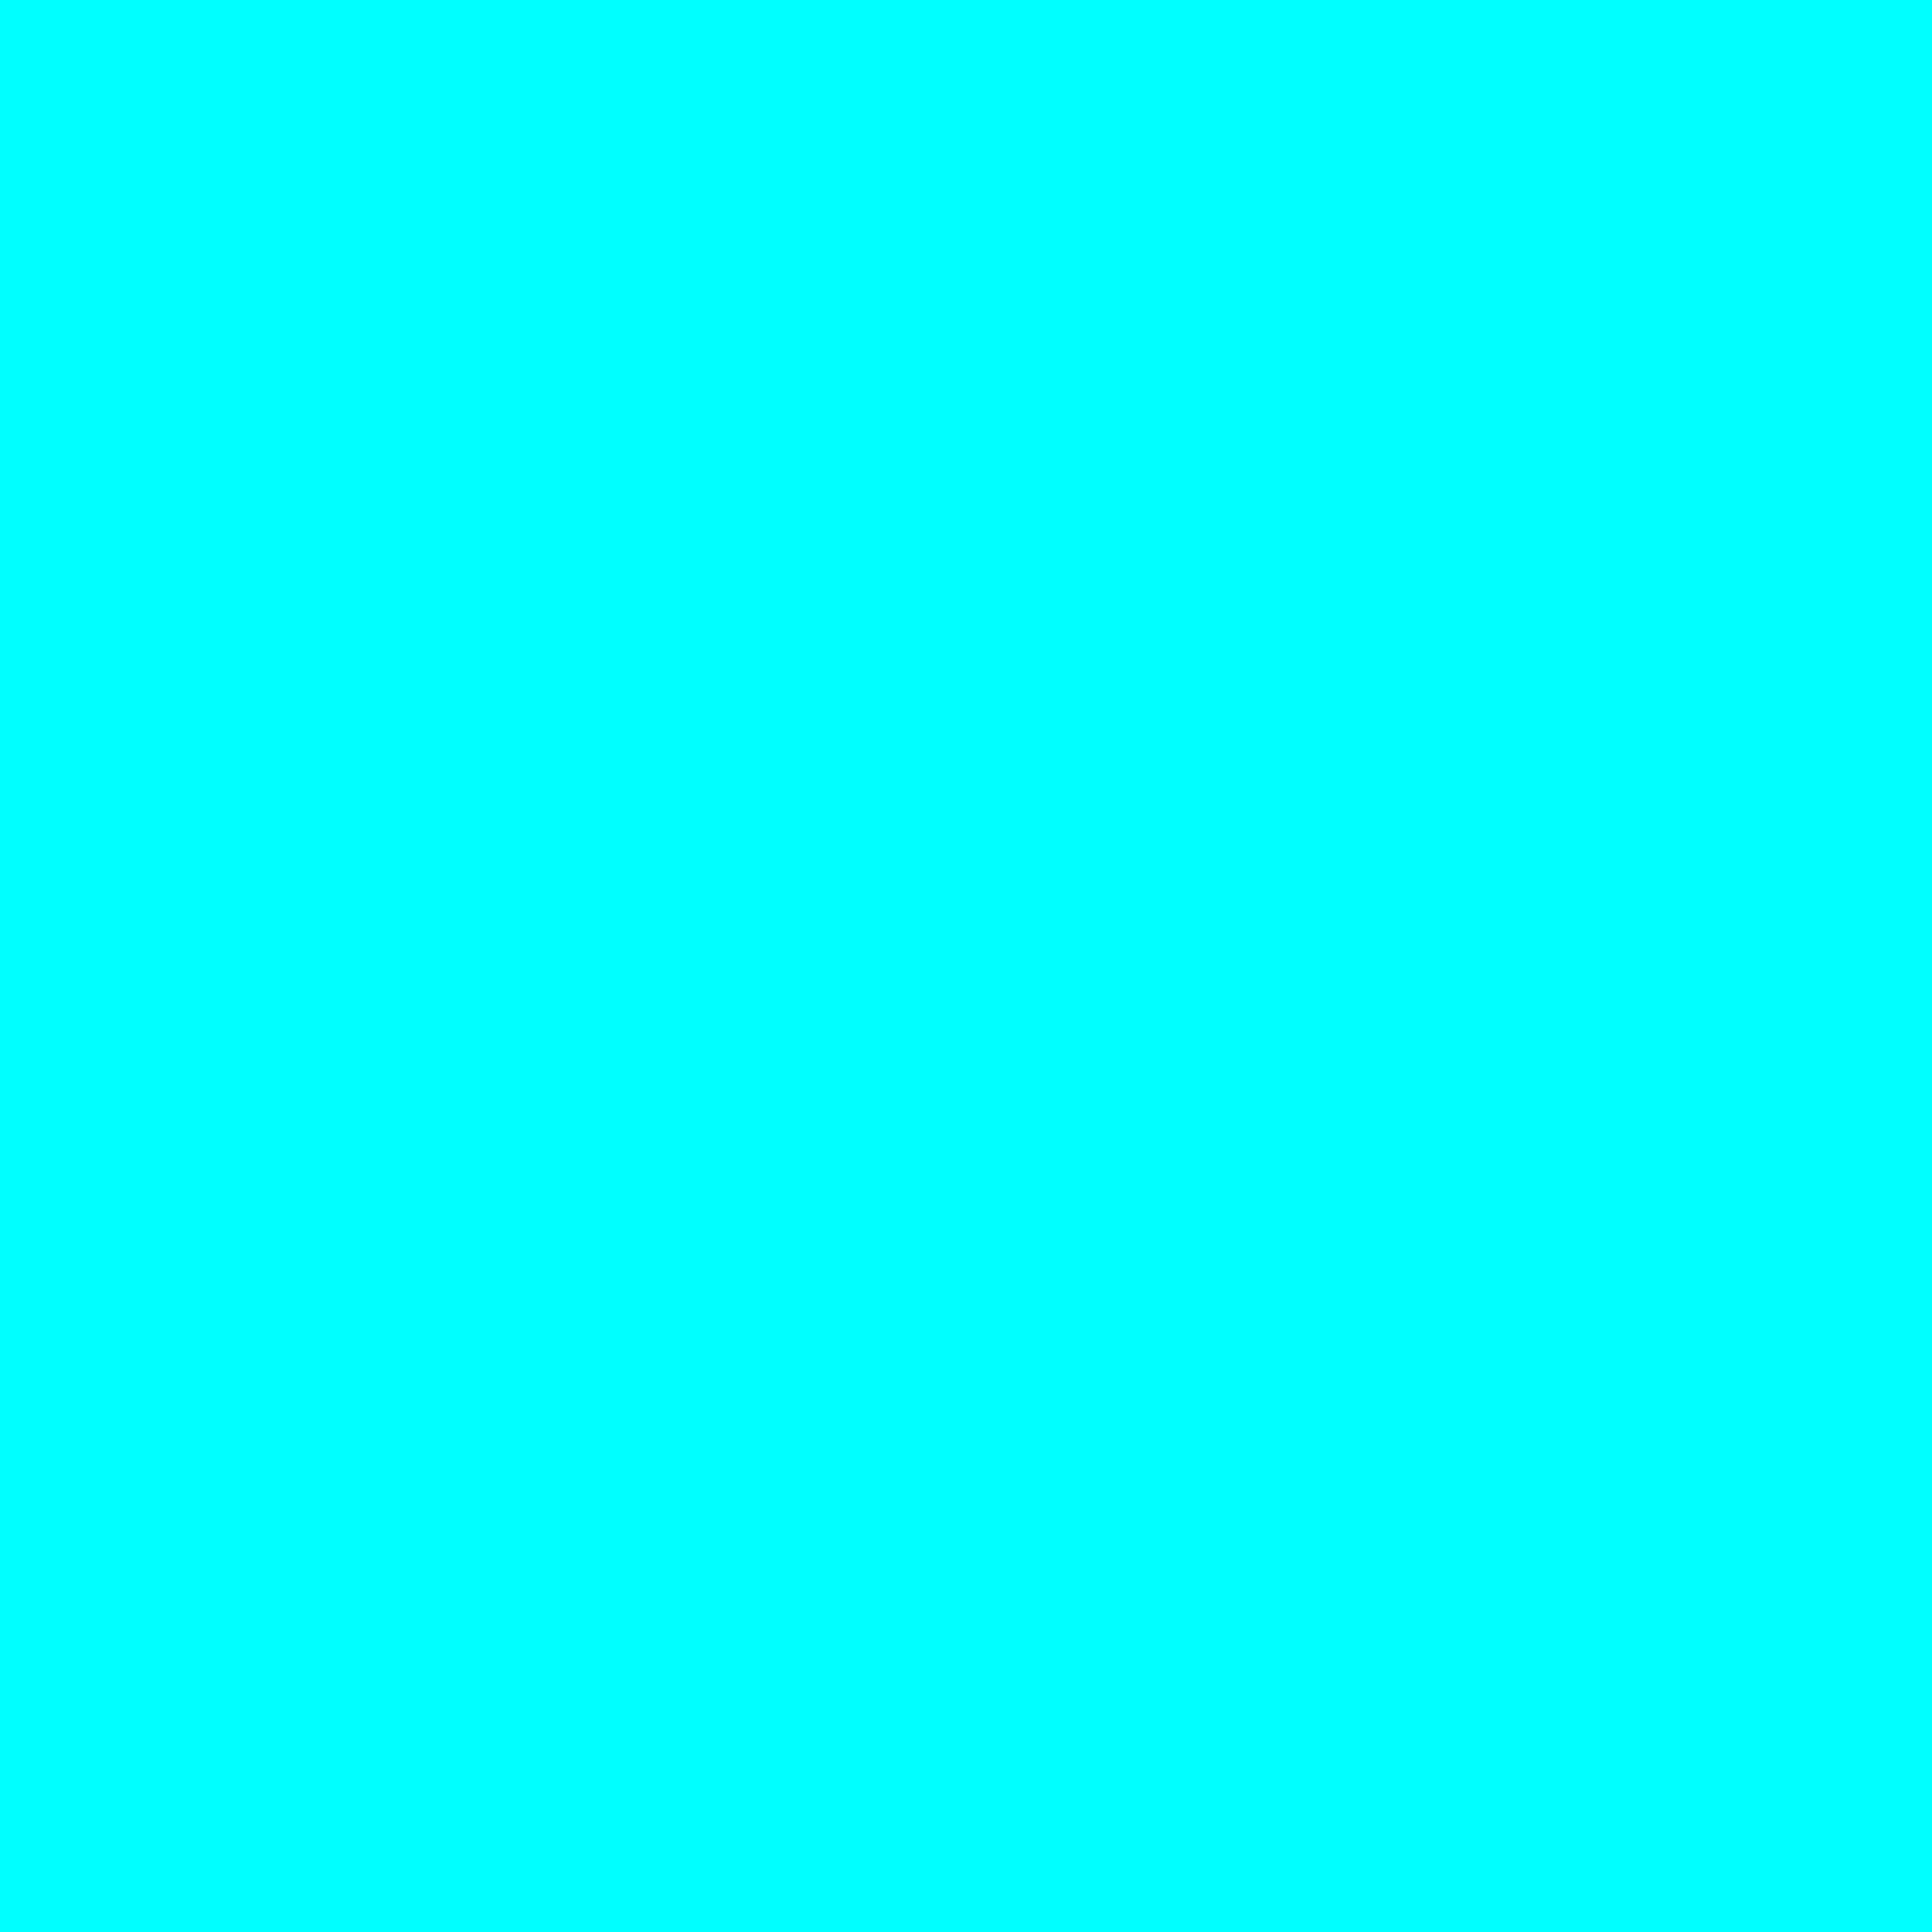 3600x3600 Electric Cyan Solid Color Background